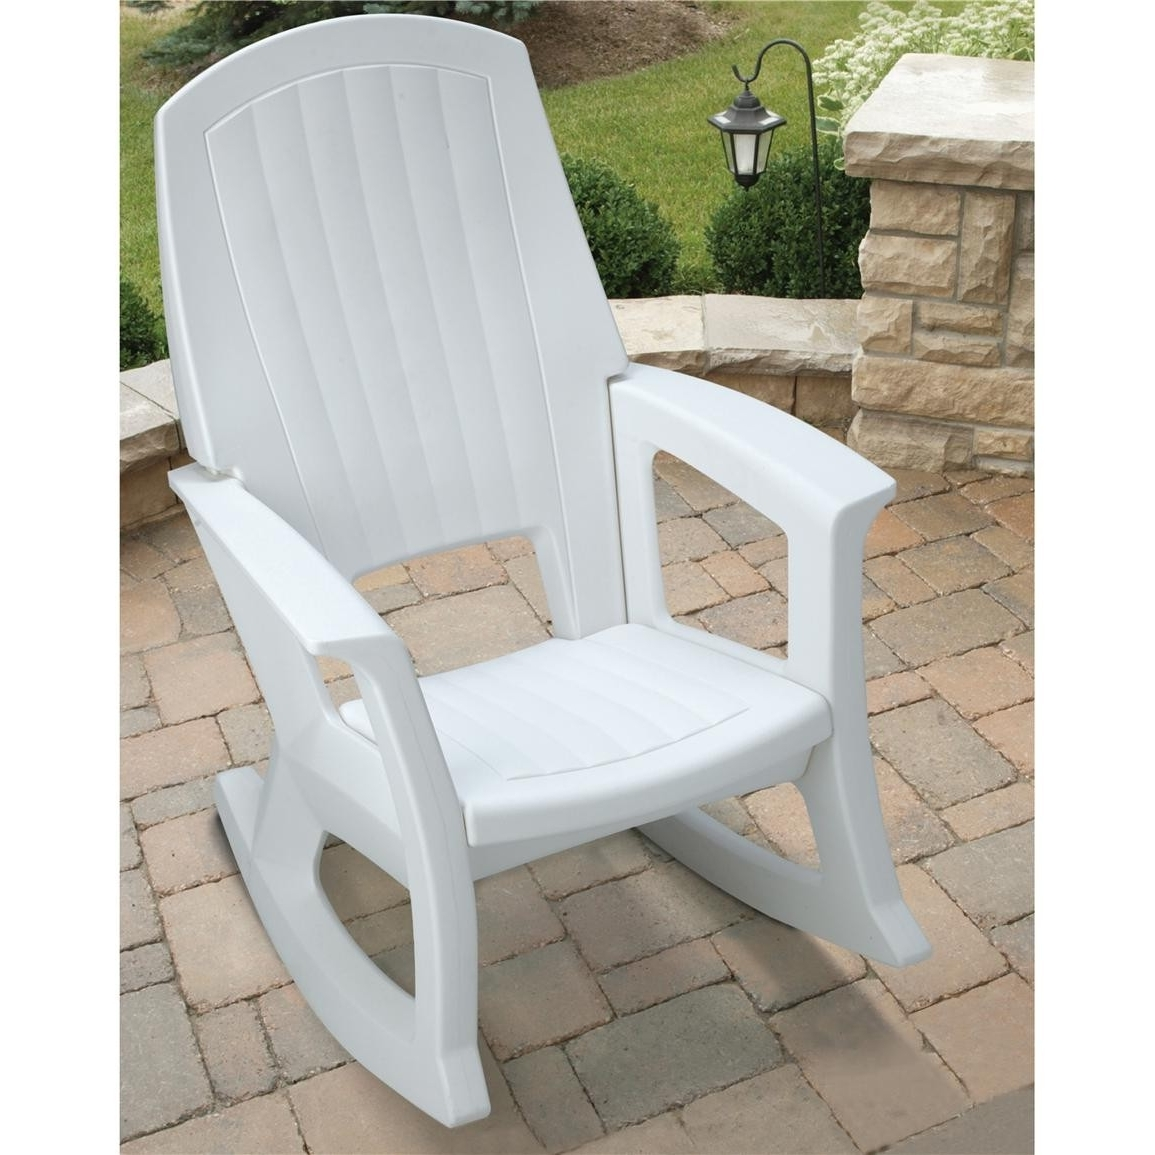 Furniture & Organization: White Resin Patio Rocking Chairs And Patio With Regard To Most Recent Modern Patio Rocking Chairs (View 6 of 20)